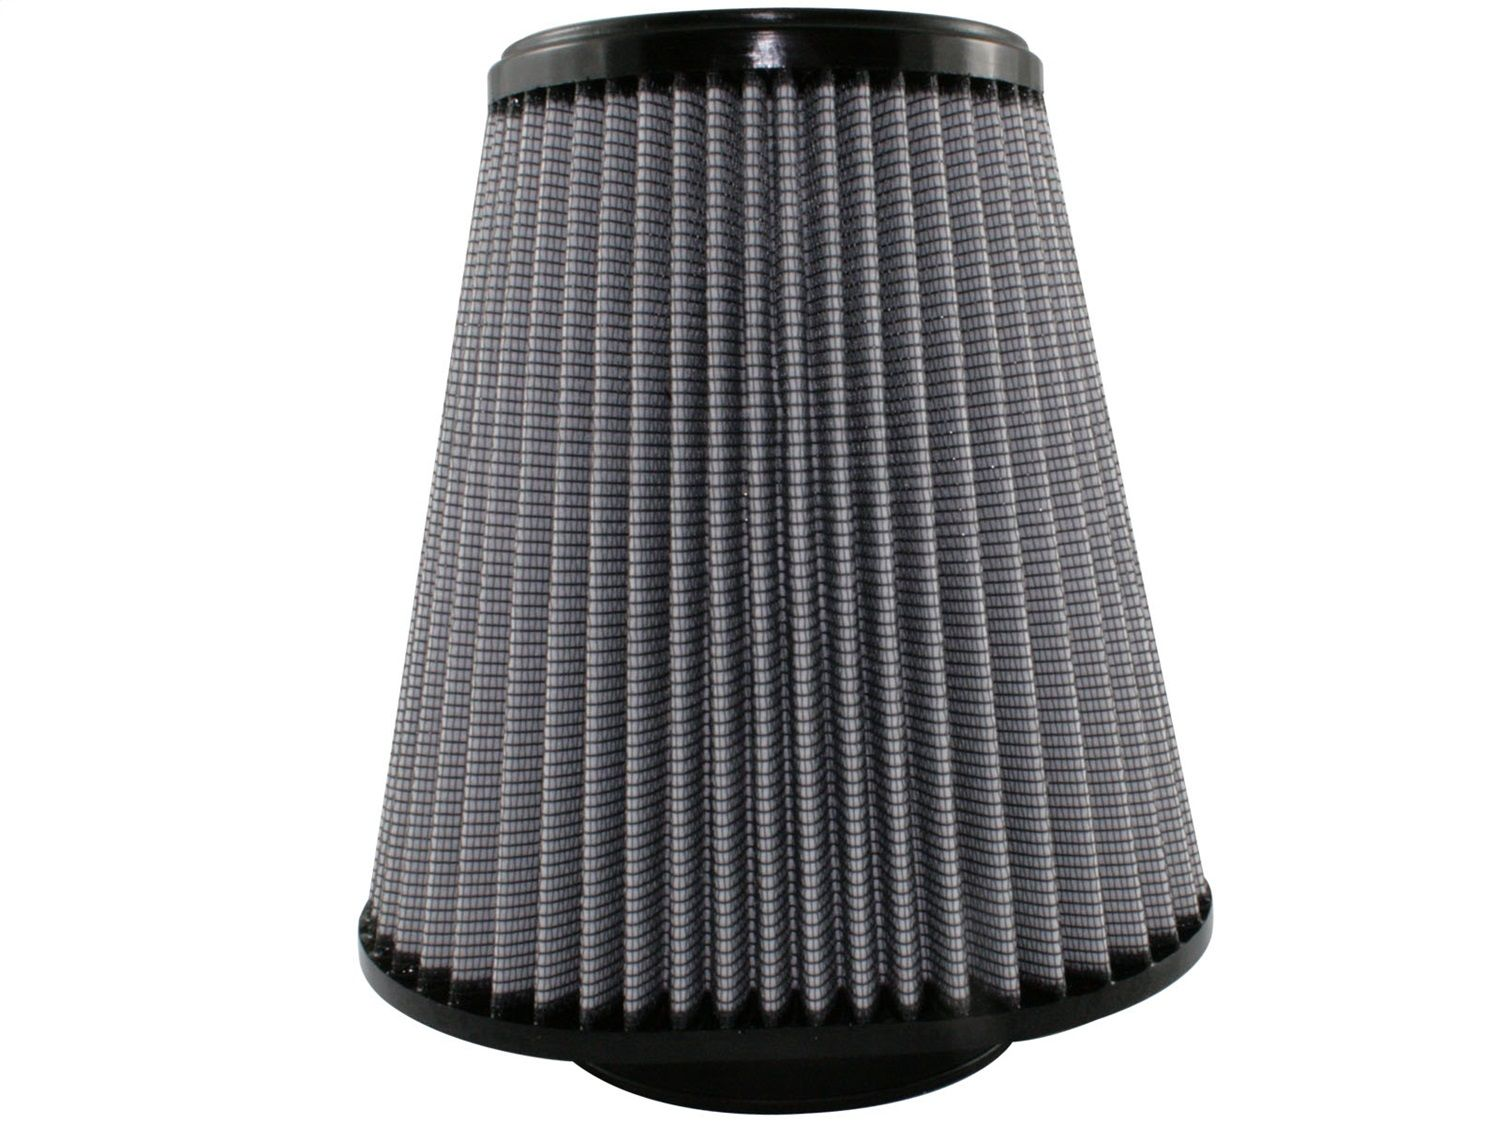 Pin on Filters. Car and Truck Parts